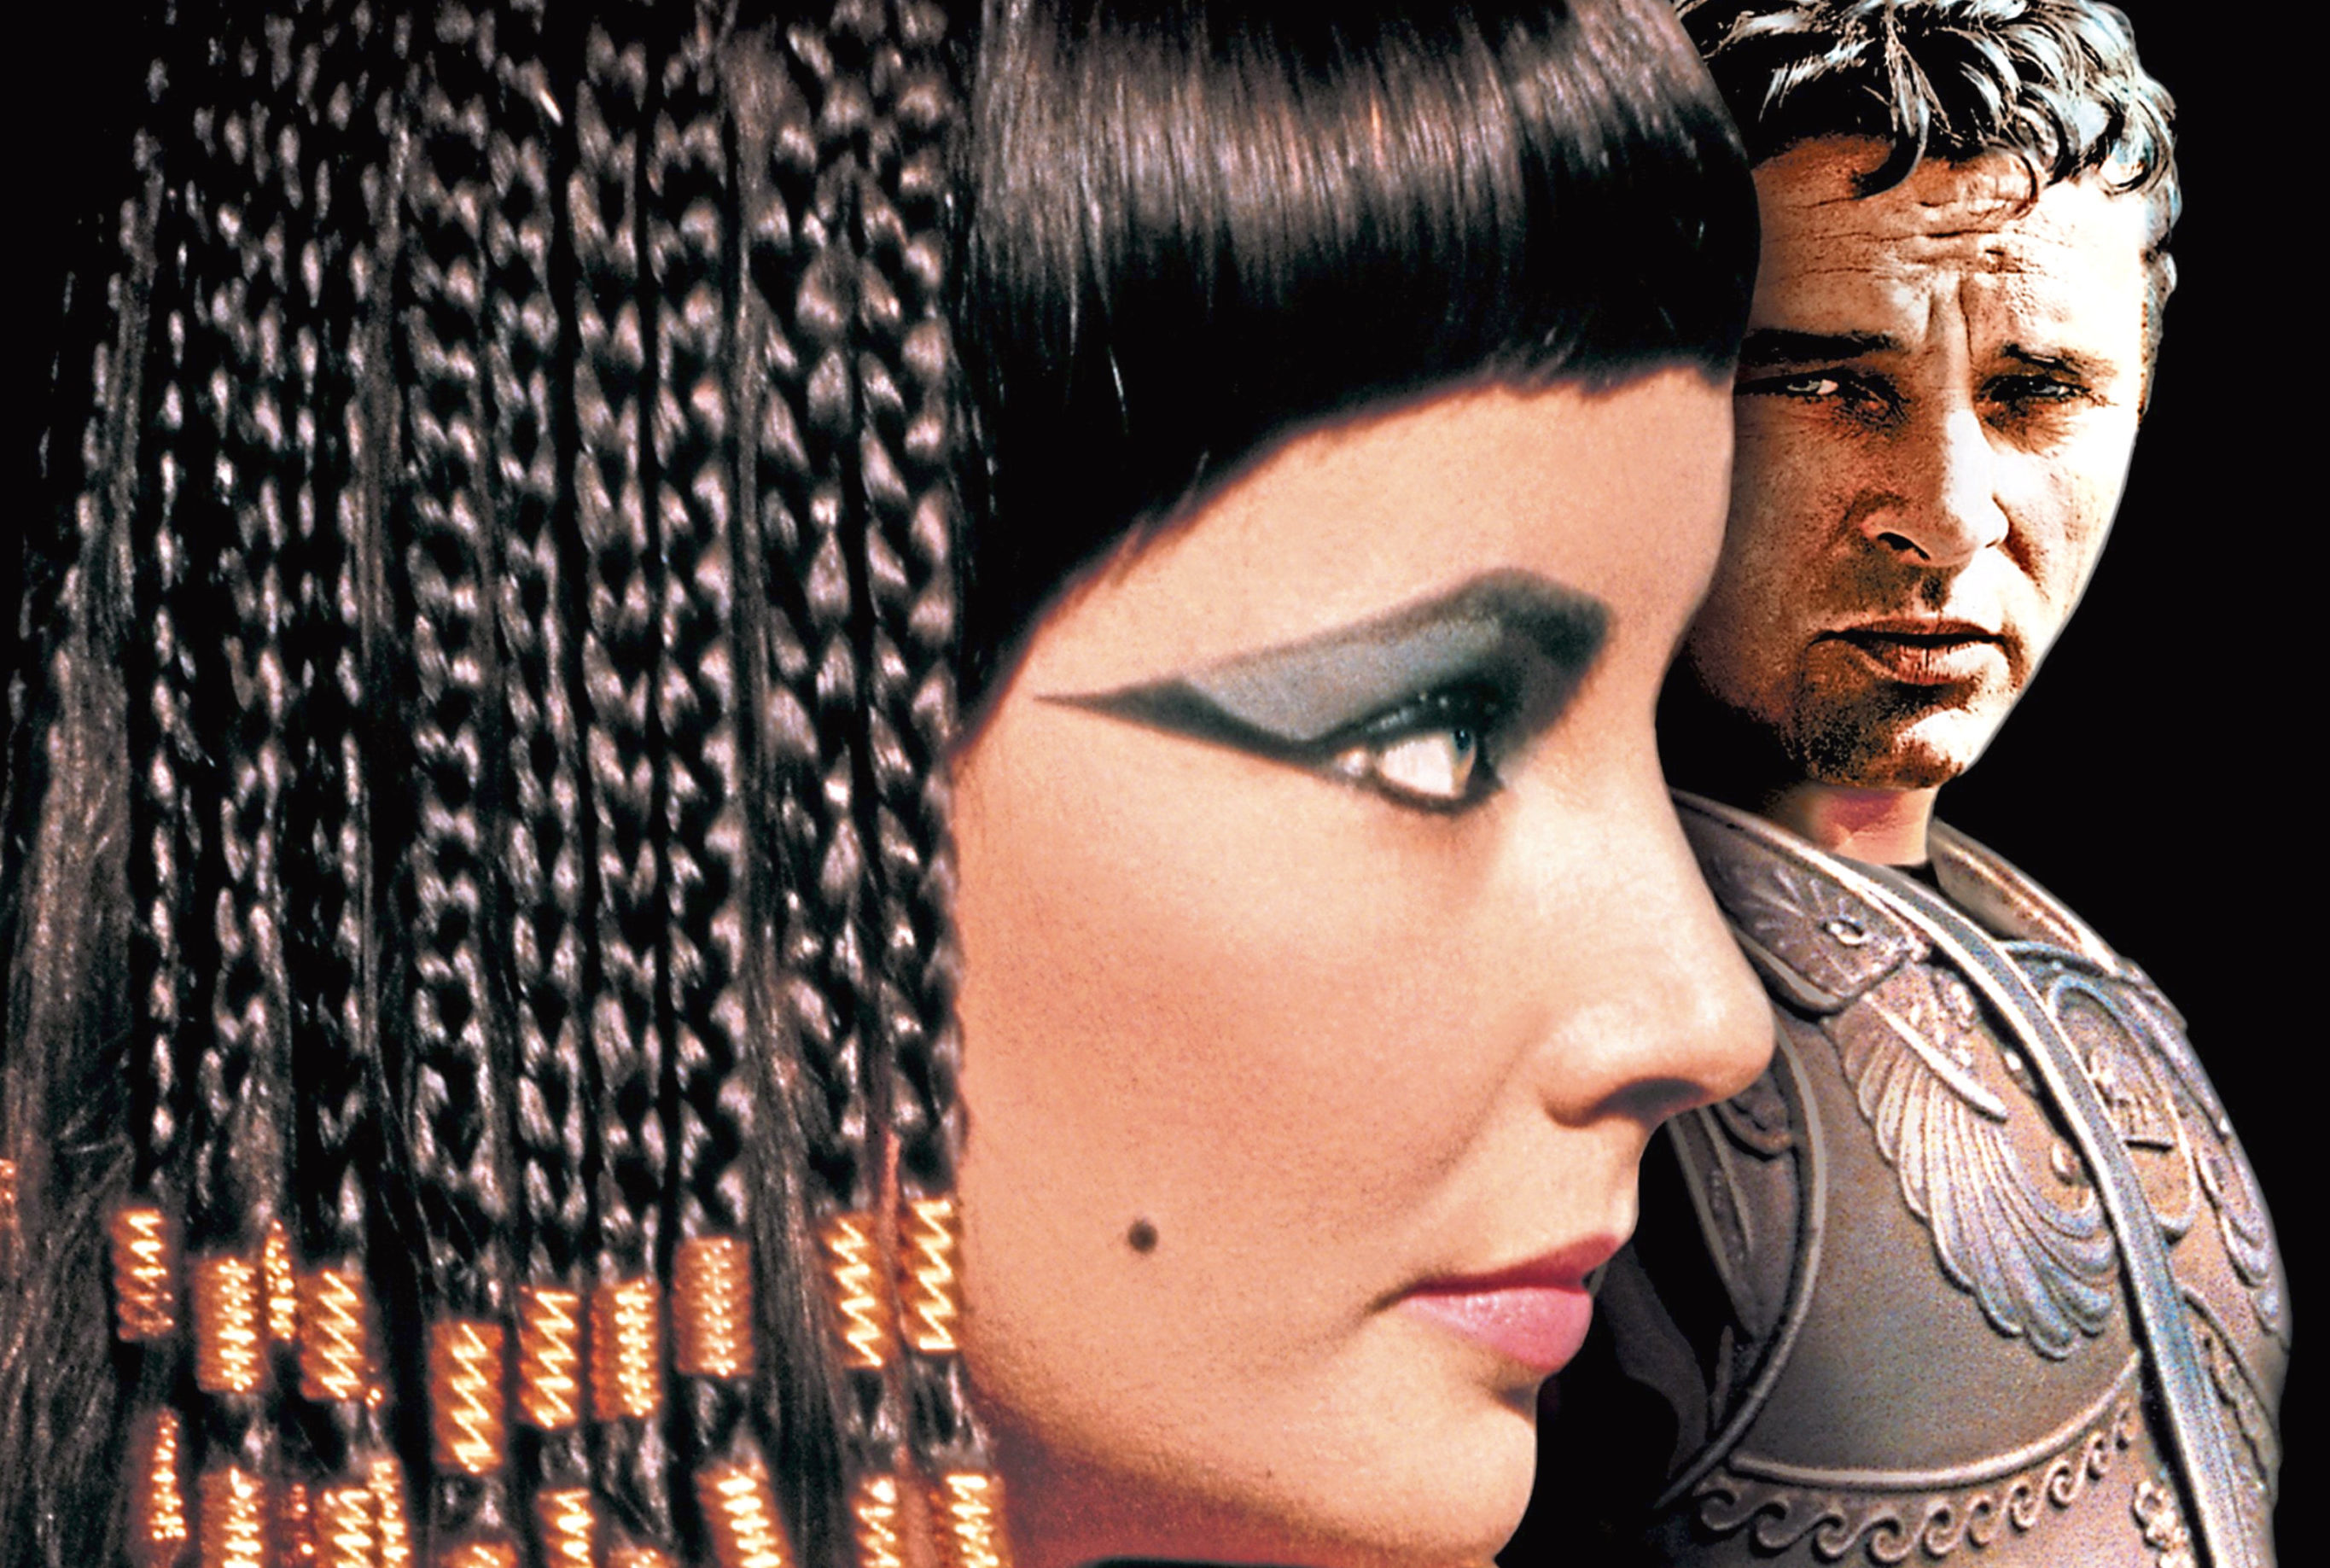 Liz and Richard Burton in Cleopatra (Allstar/20TH CENTURY FOX)